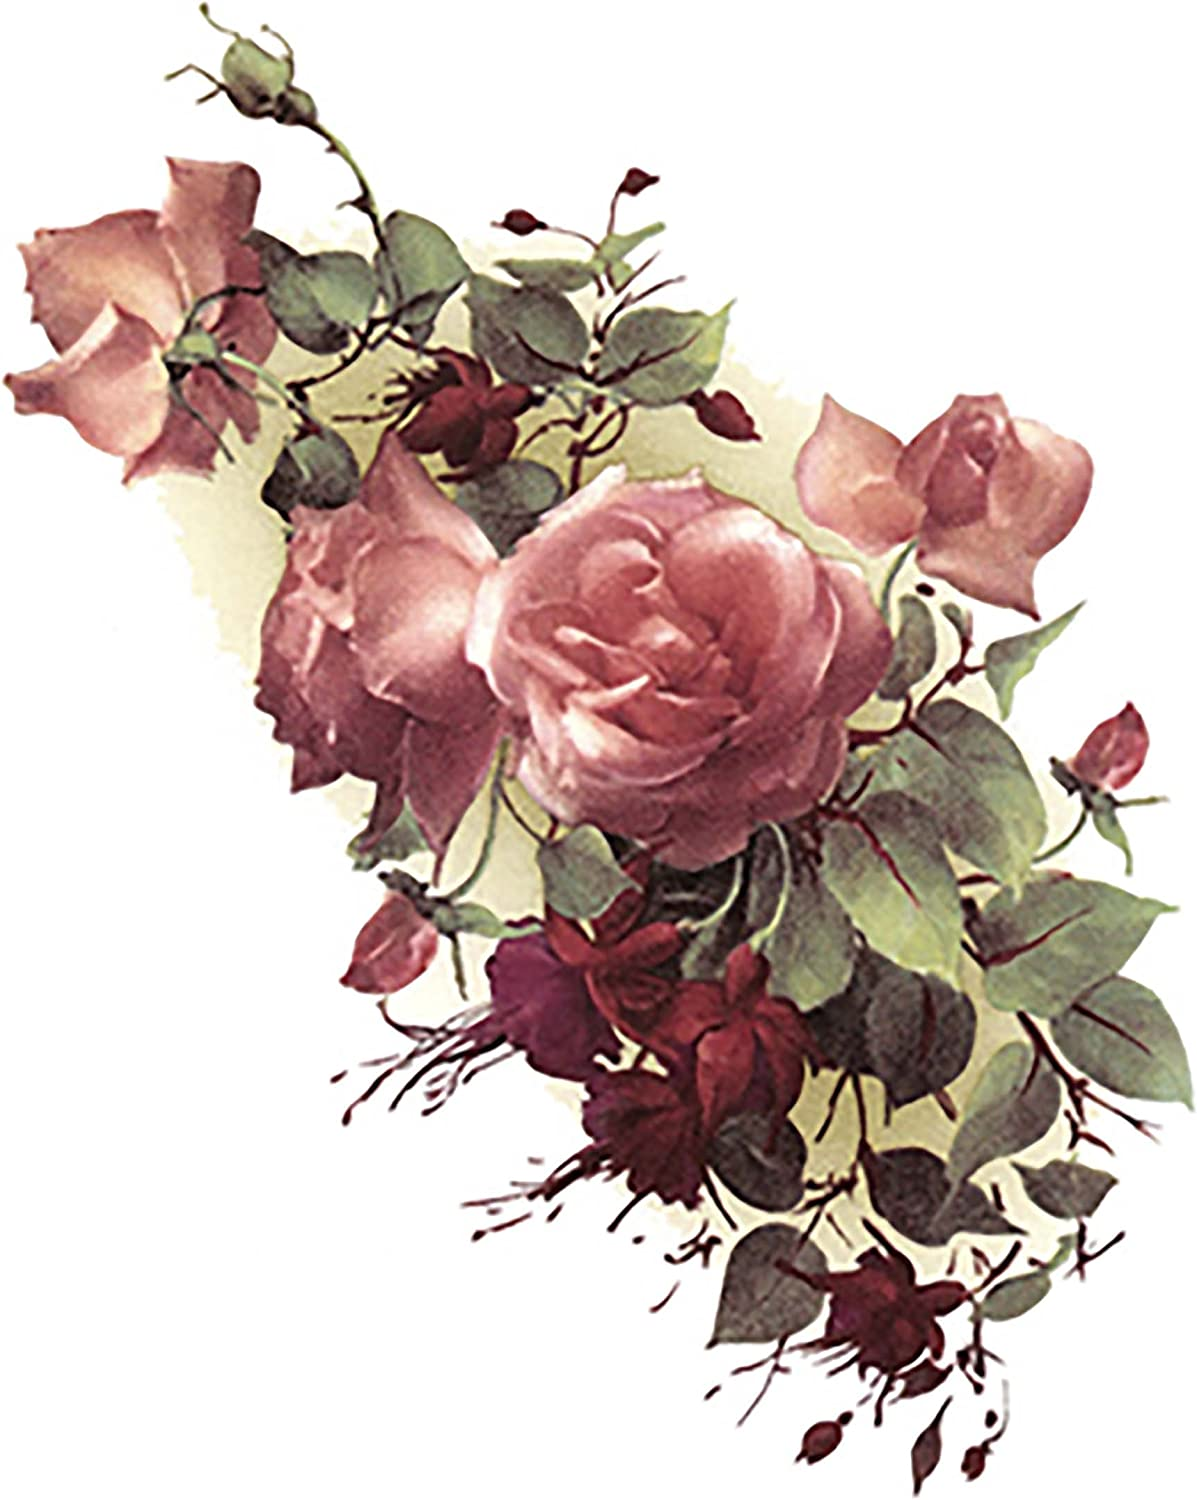 Pink Rose Fuchsia Flowers 2880 Waterslide Ceramic Decals By The Sheet 18 pcs 2 X 1-1//4 Select-A-Size